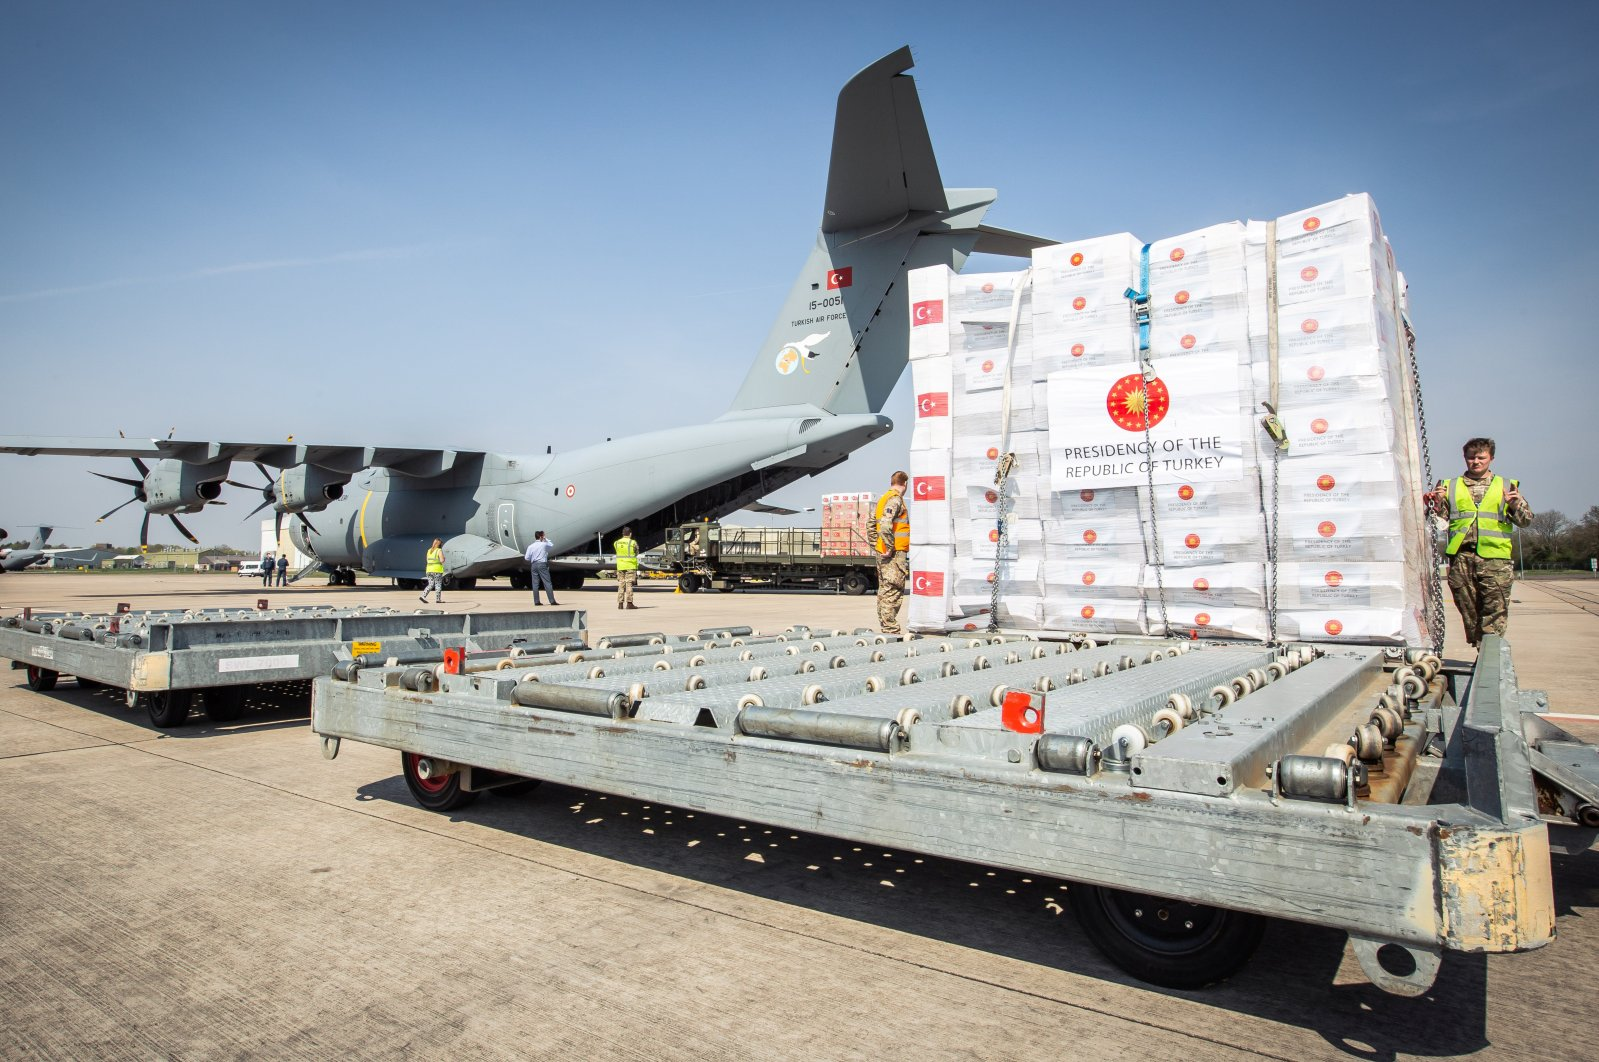 Turkey, as a country that has made a name for itself in the last decade with its humanitarian efforts, has already become a prominent figure of this fresh statecraft by sending medical aid packages to many corners of the globe every other day. (REUTERS)